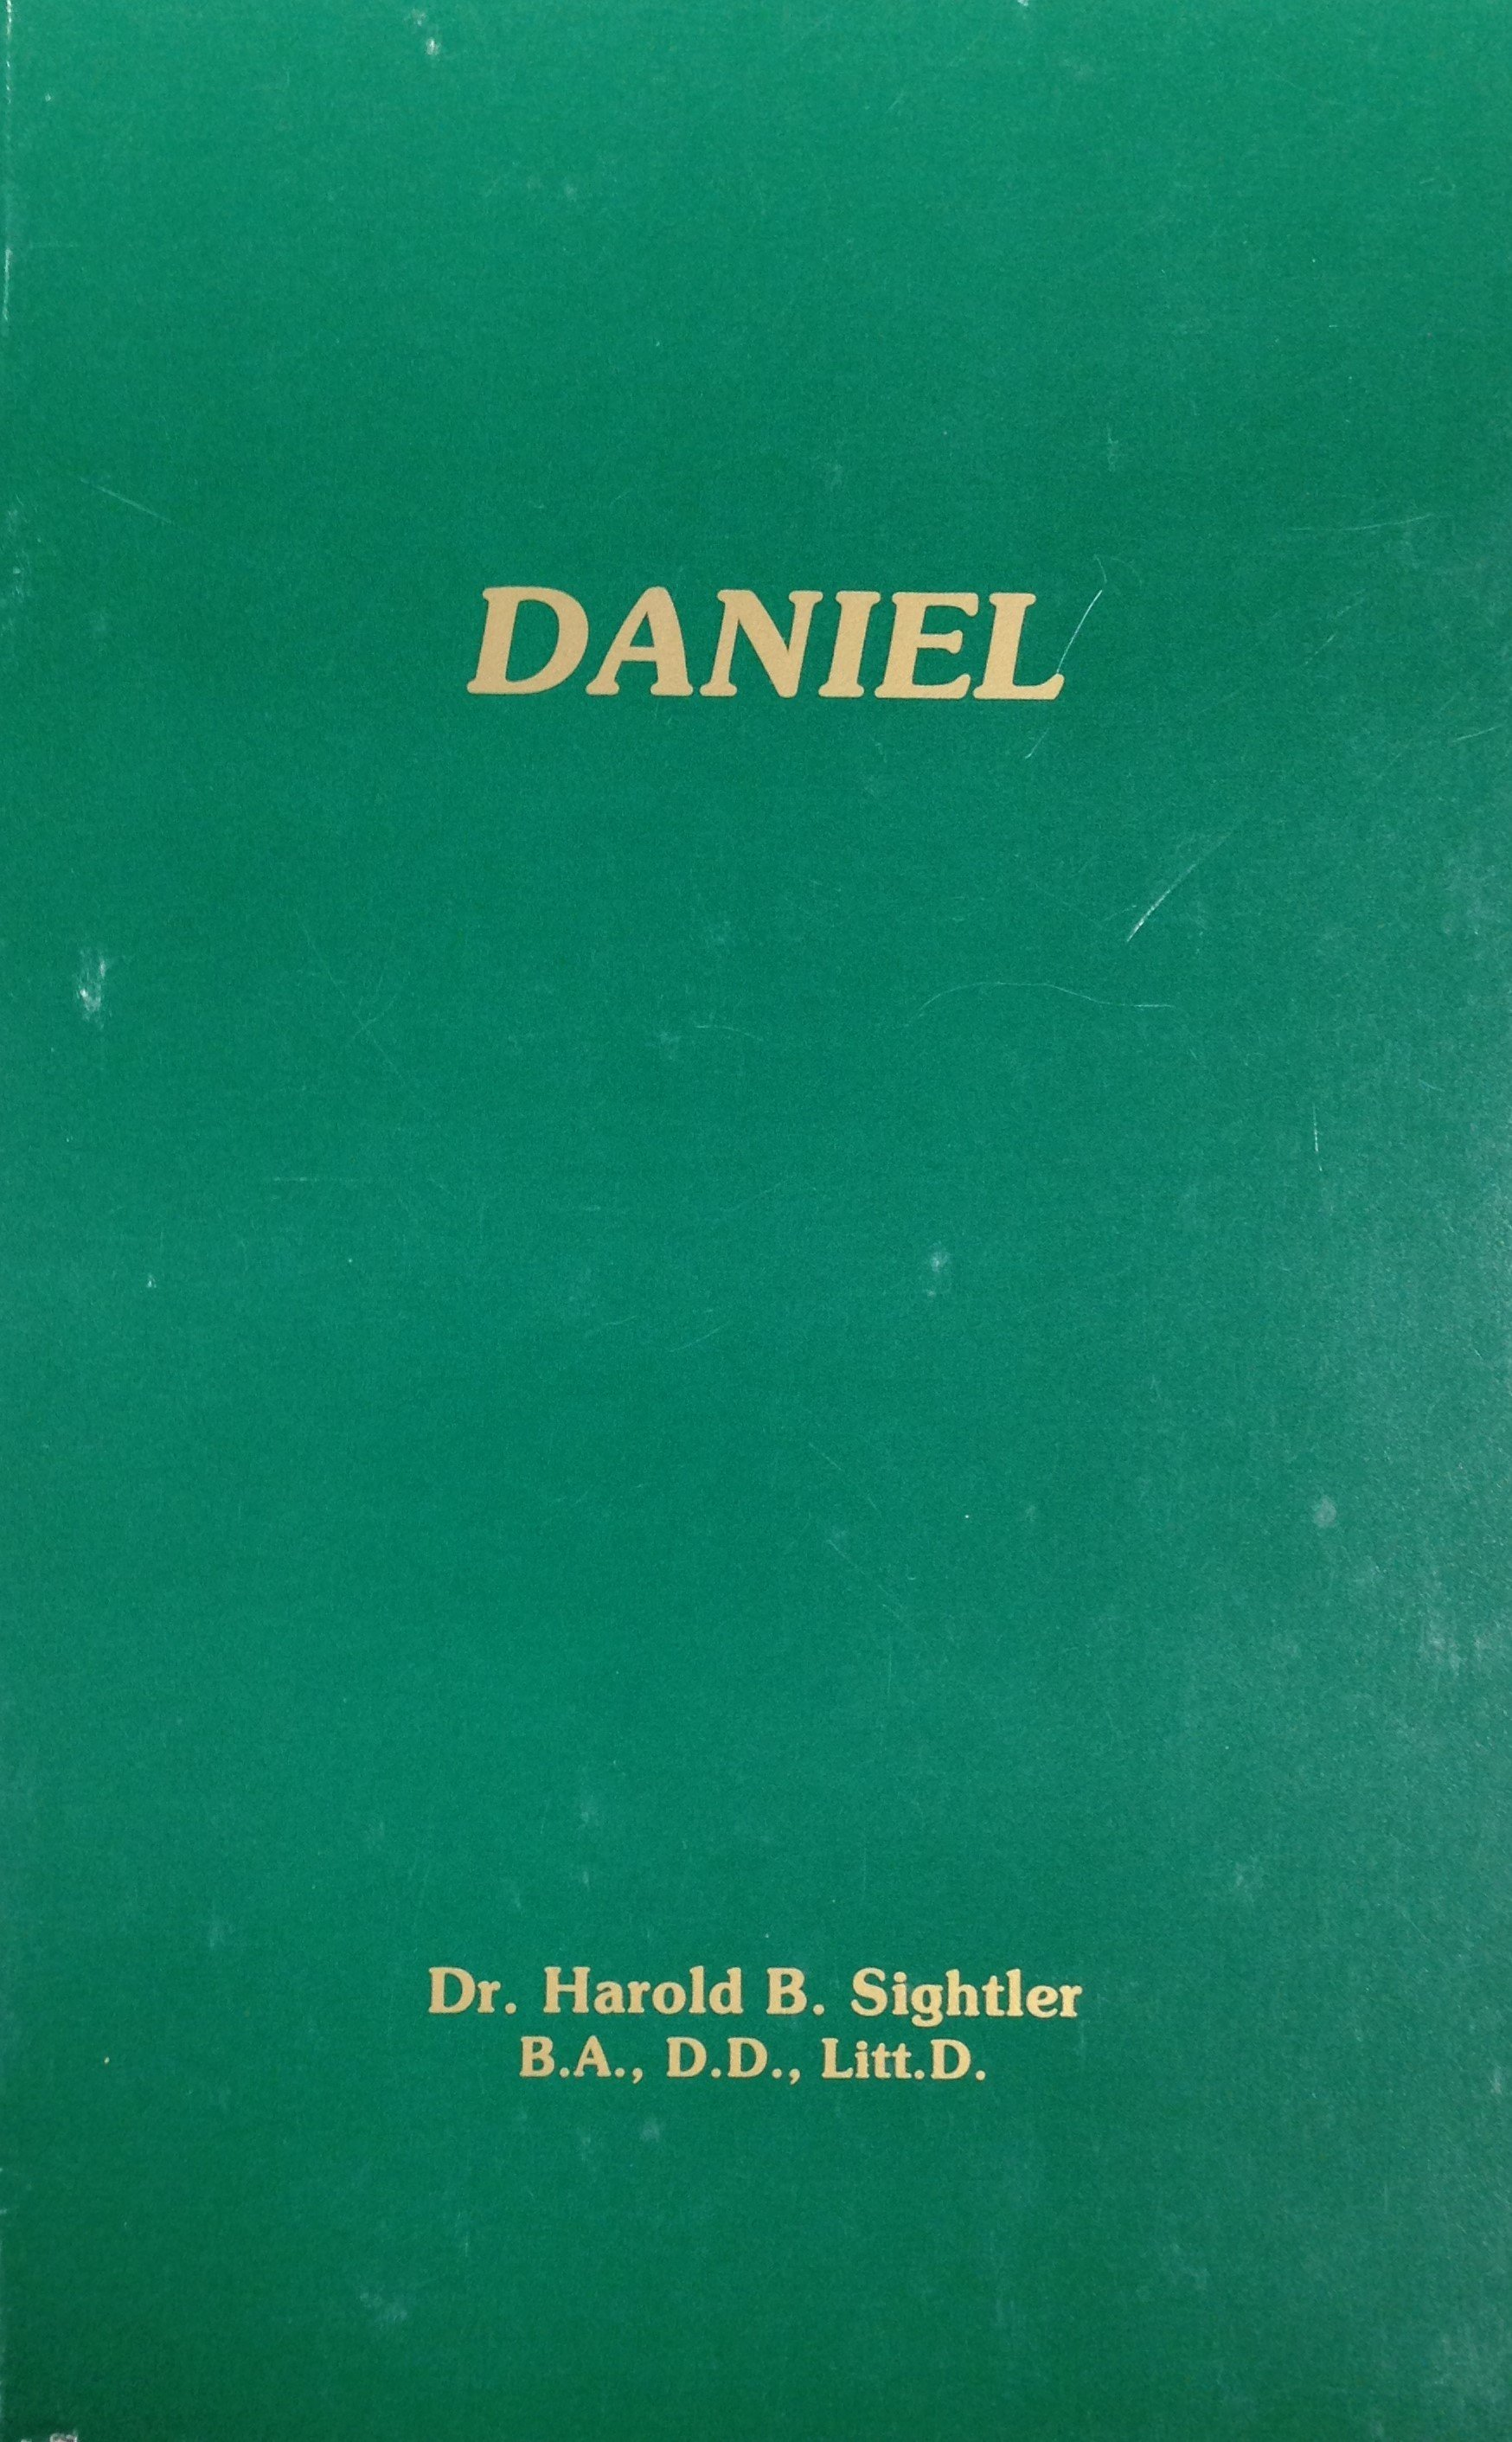 Daniel by Dr. Harold B. Sightler 00048